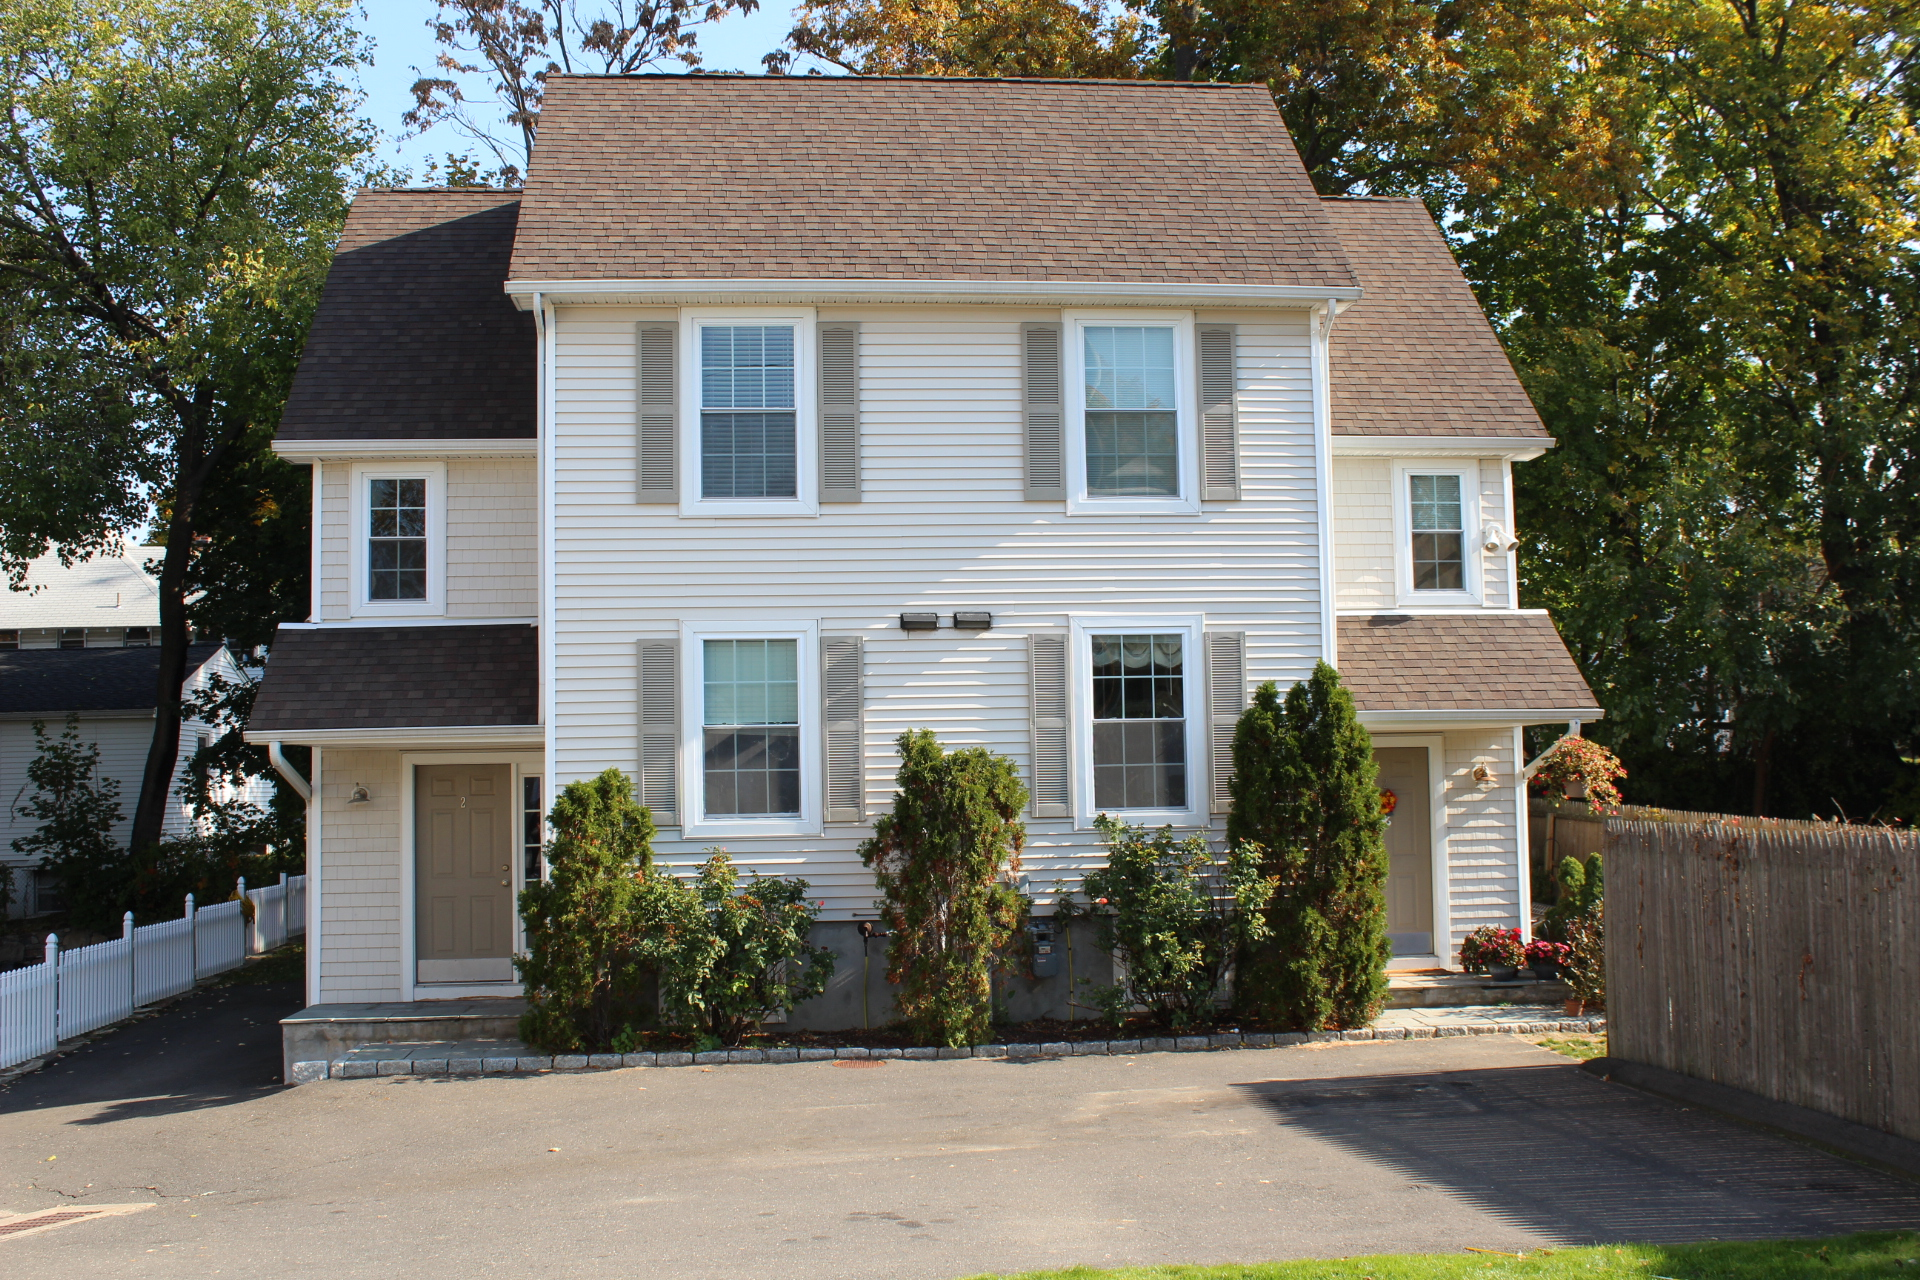 per Vendita alle ore Spacious Townhouse in Sought After East Norwalk Area 2 Bethel Street A Norwalk, Connecticut, 06855 Stati Uniti